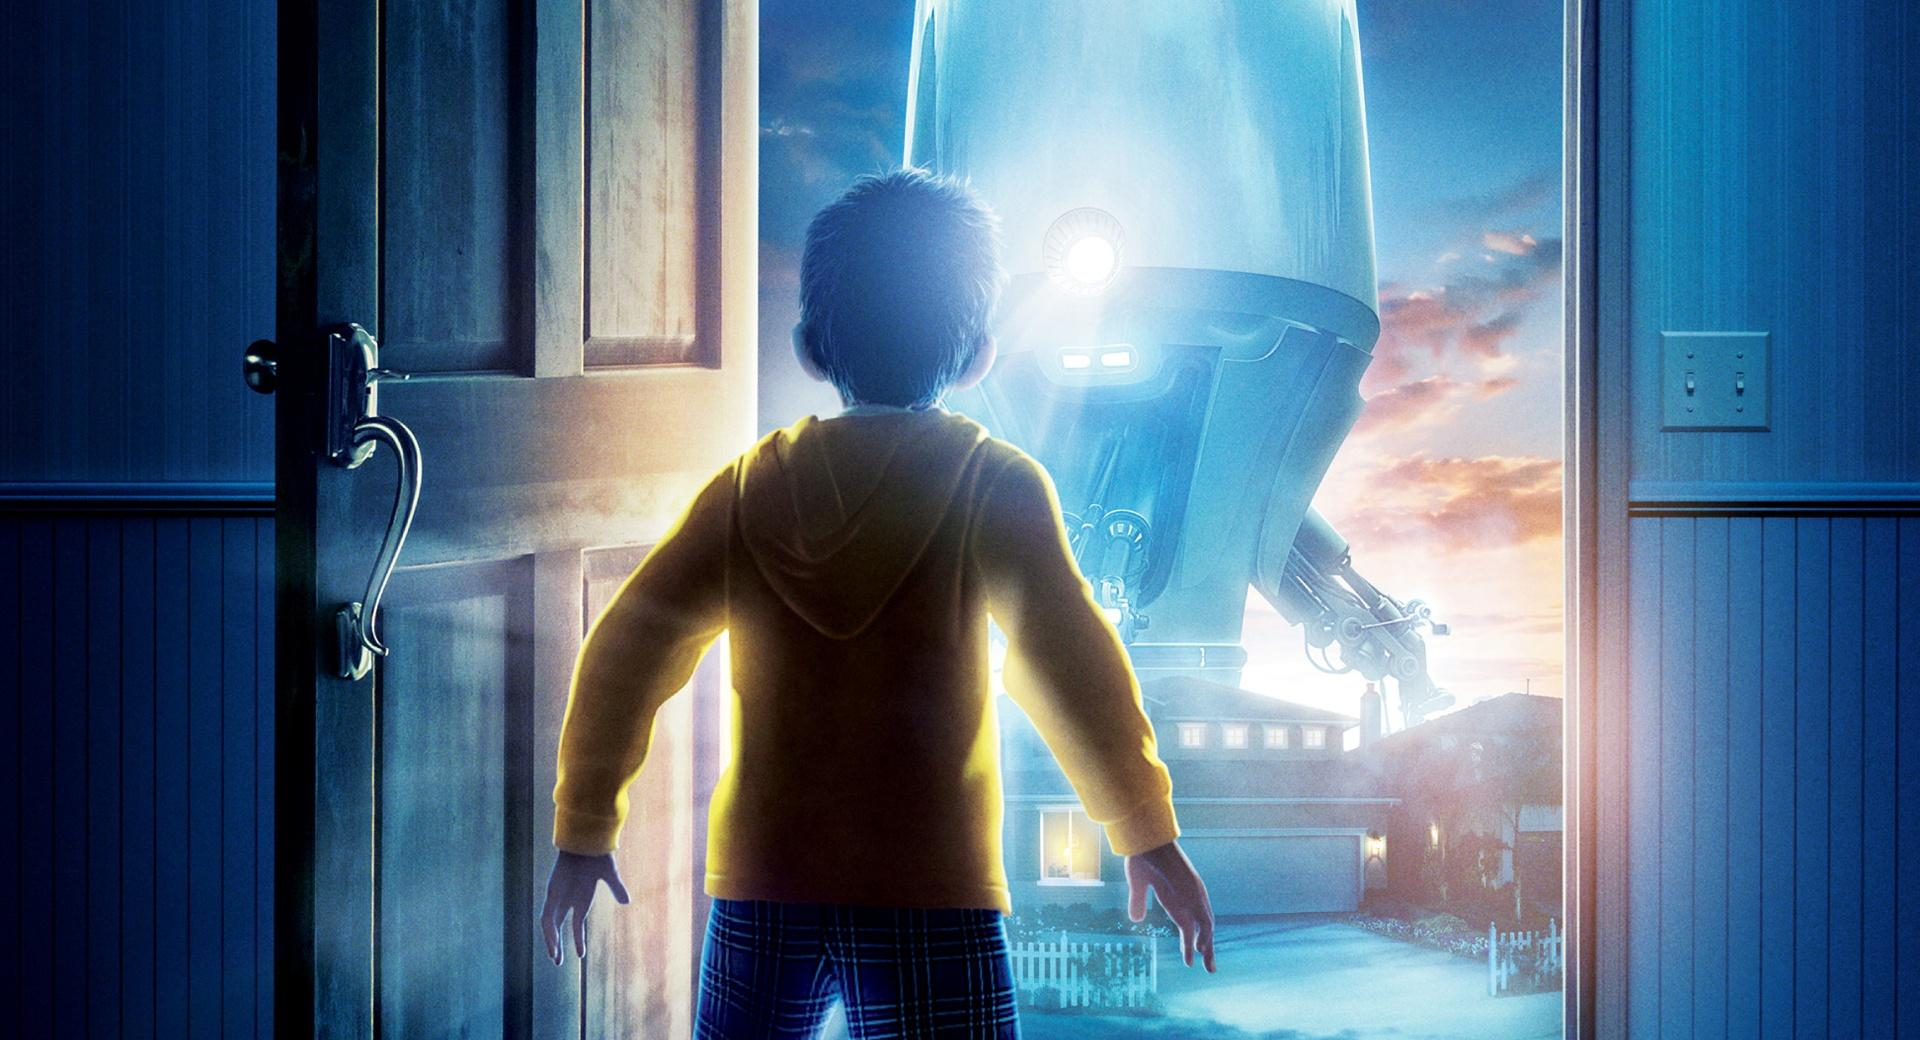 Mars Needs Moms 2011 Movie wallpapers HD quality